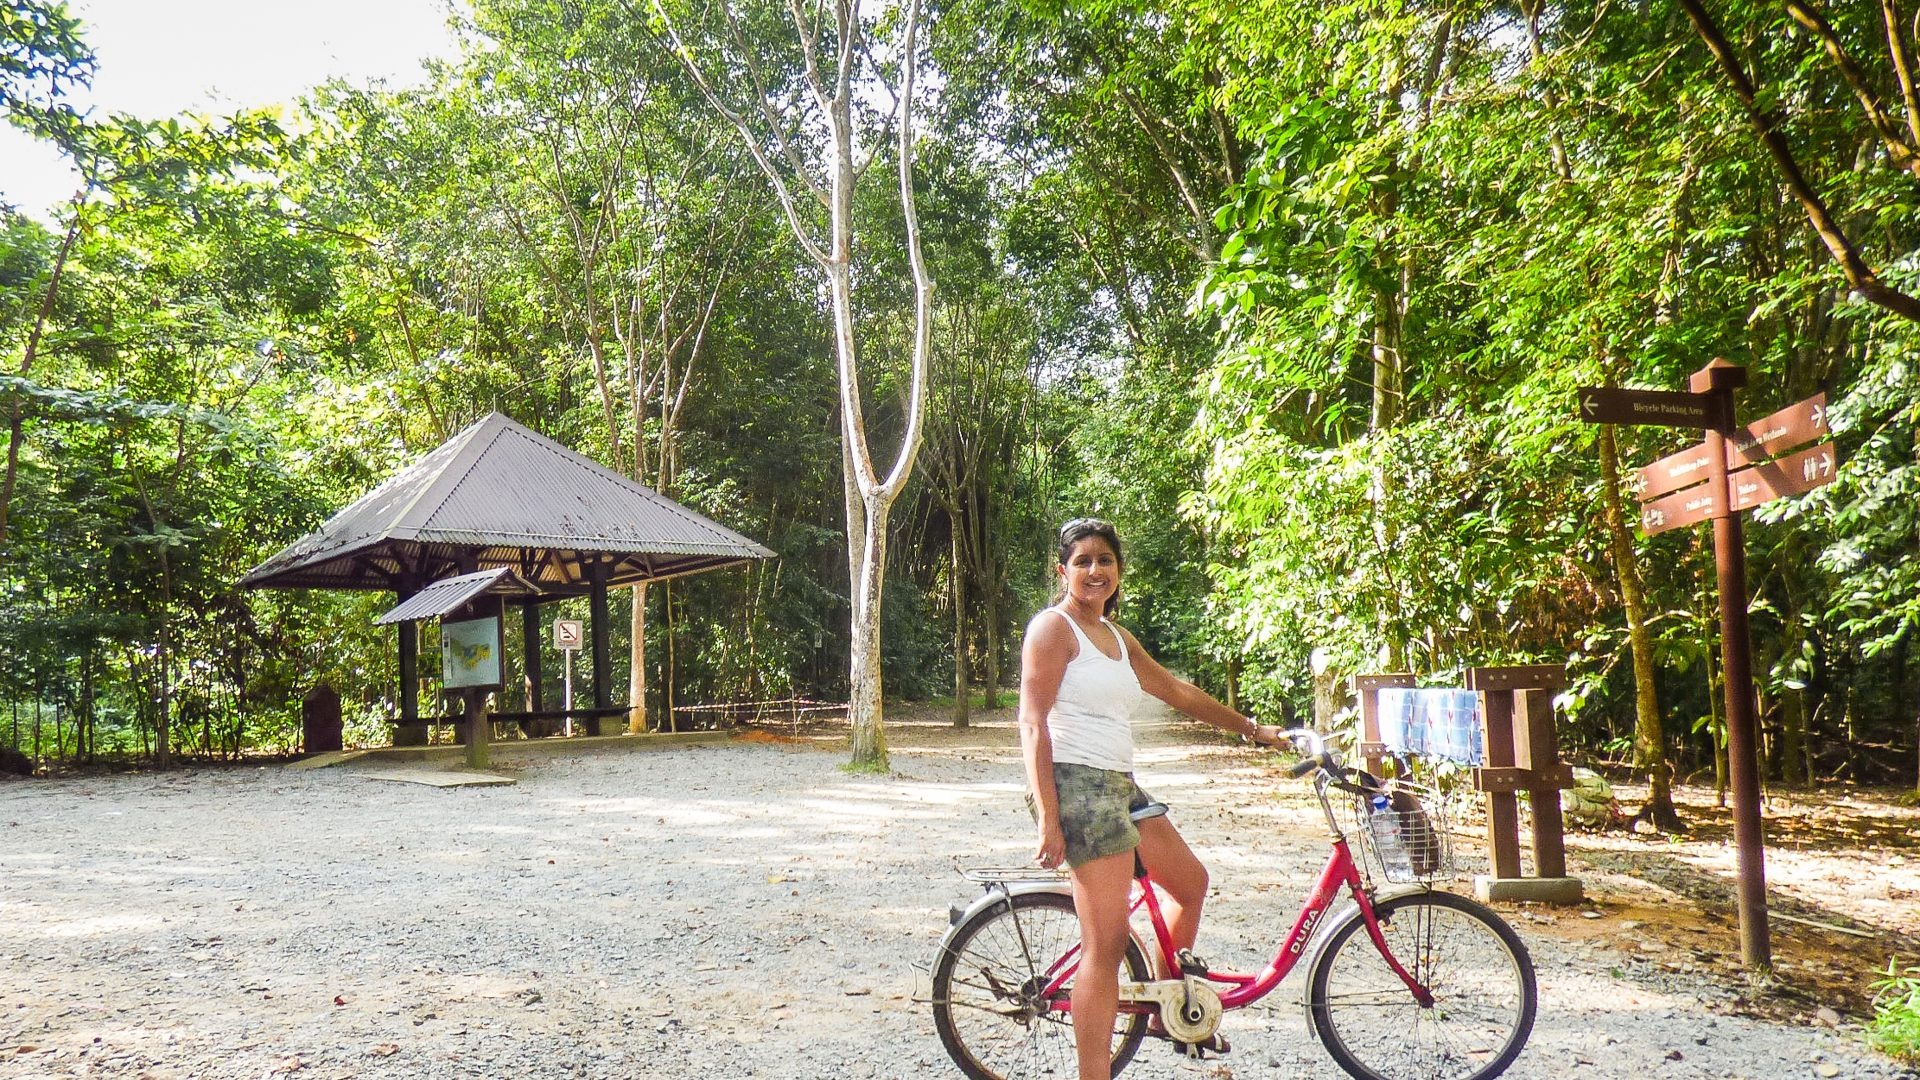 Writer Meera Dattani cycling around Pulau Ubin, an island off northeastern Singapore and the city-state's last 'kampung' or village.